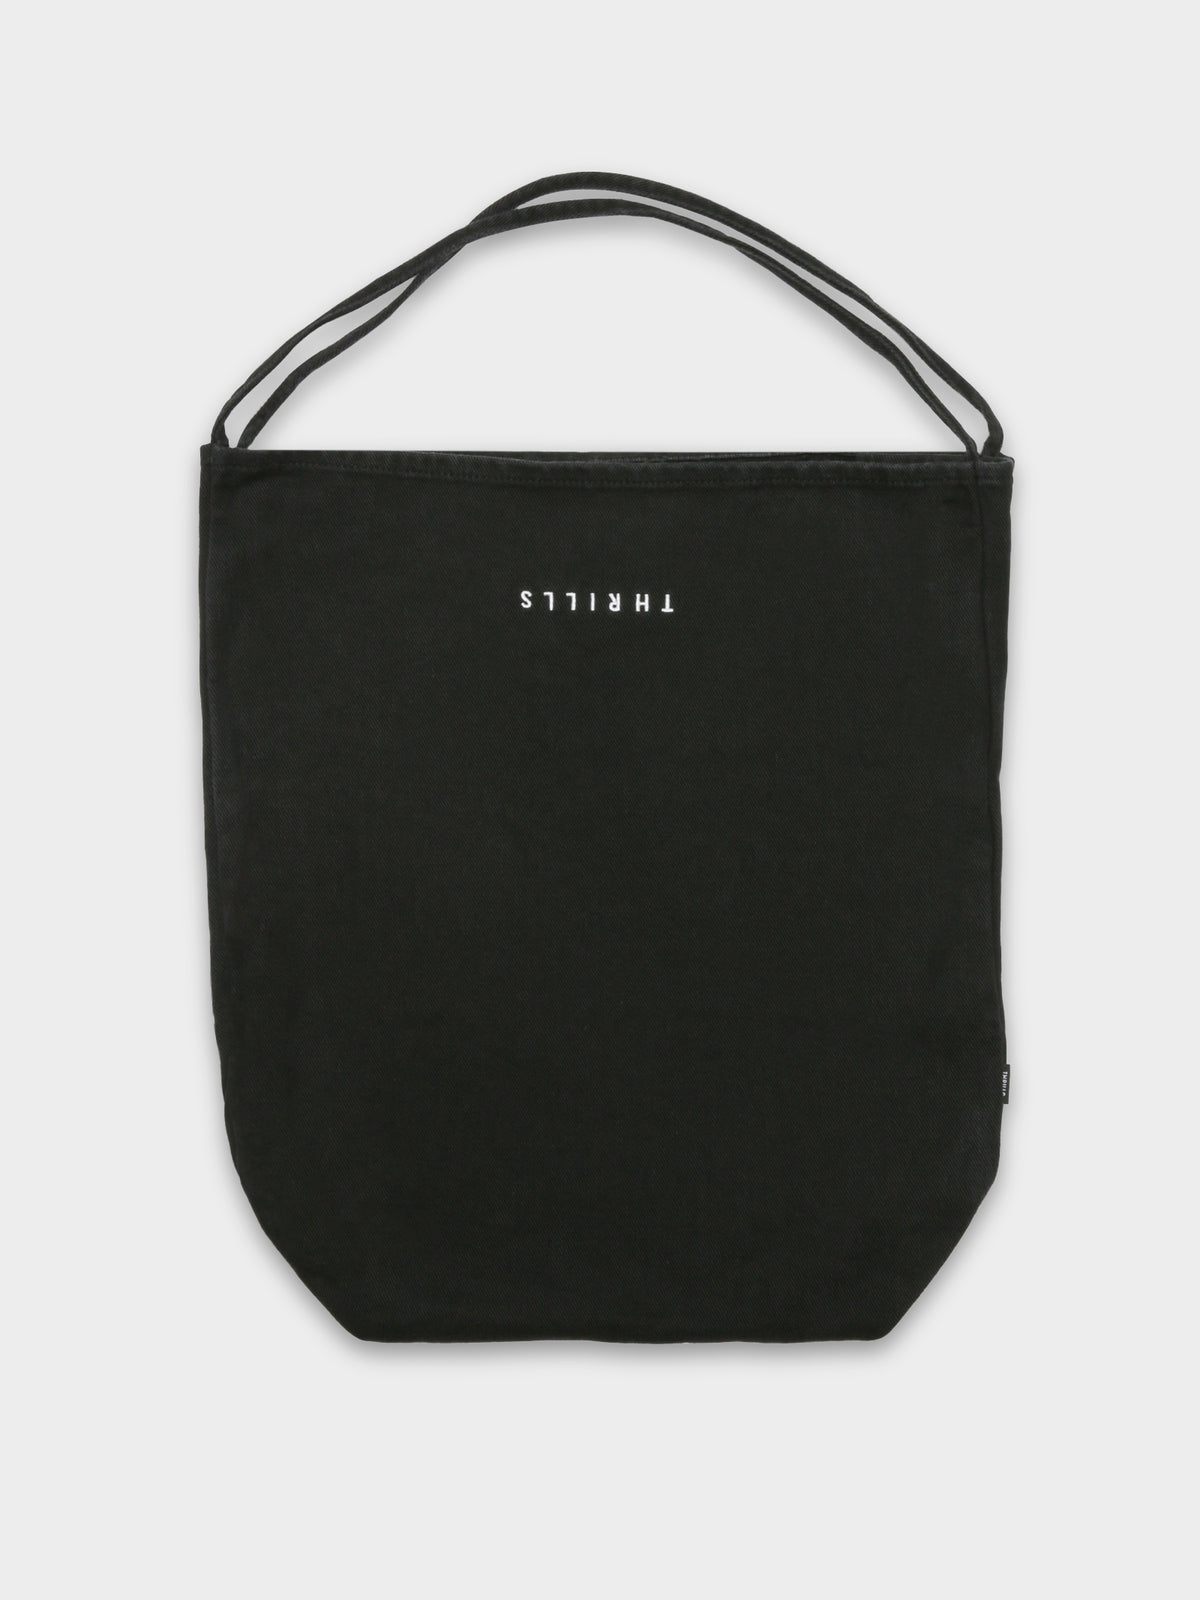 Minimal Thrills Tote in Black